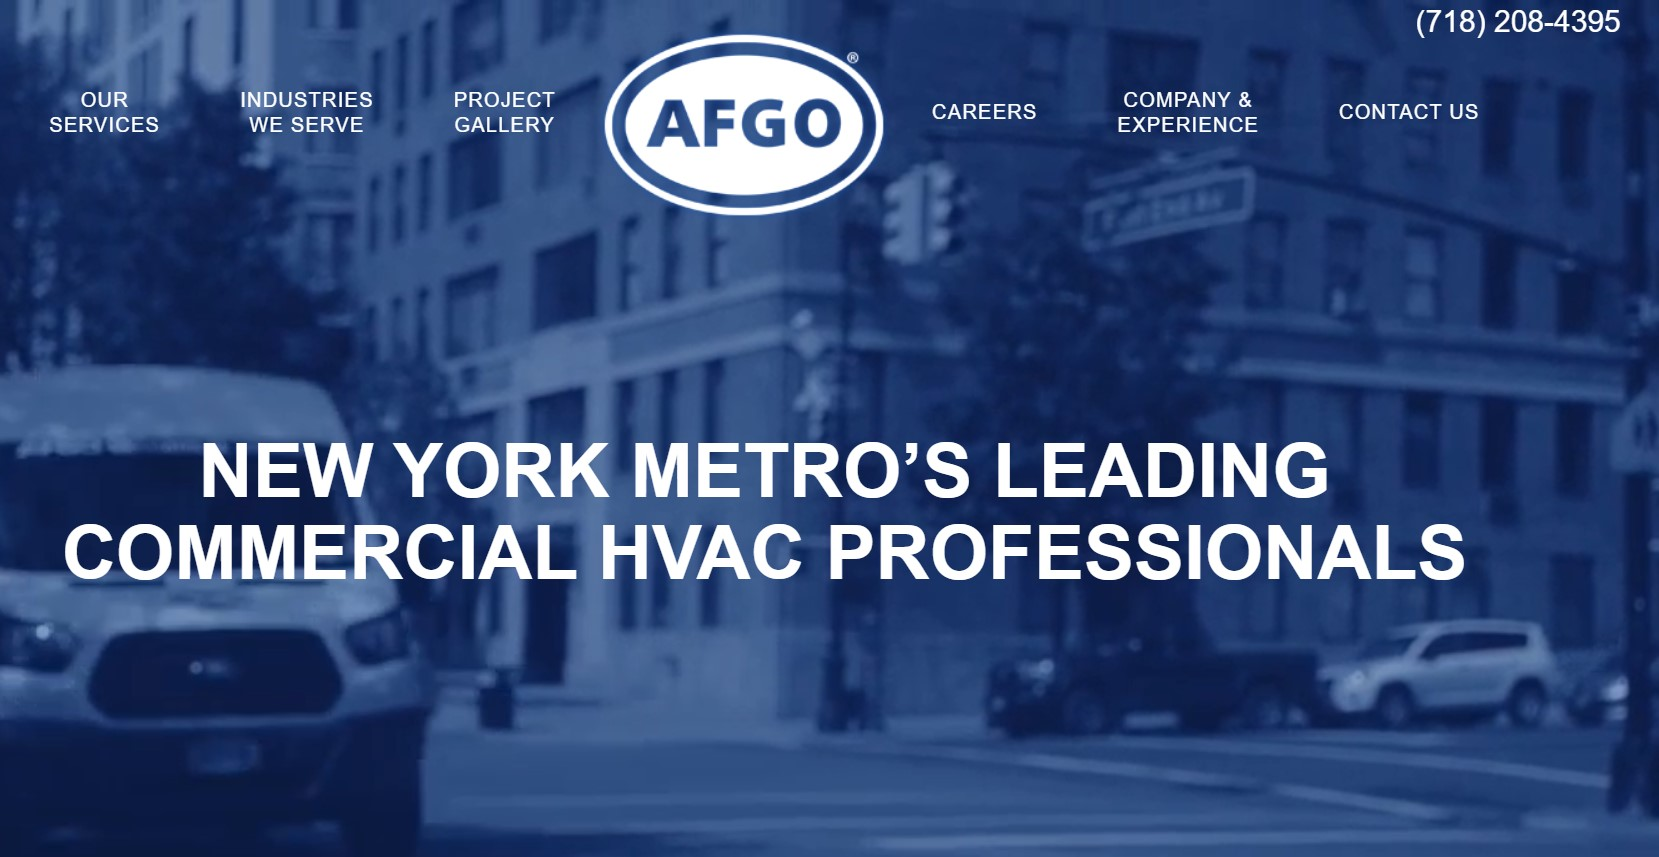 afgo hvac services in new york